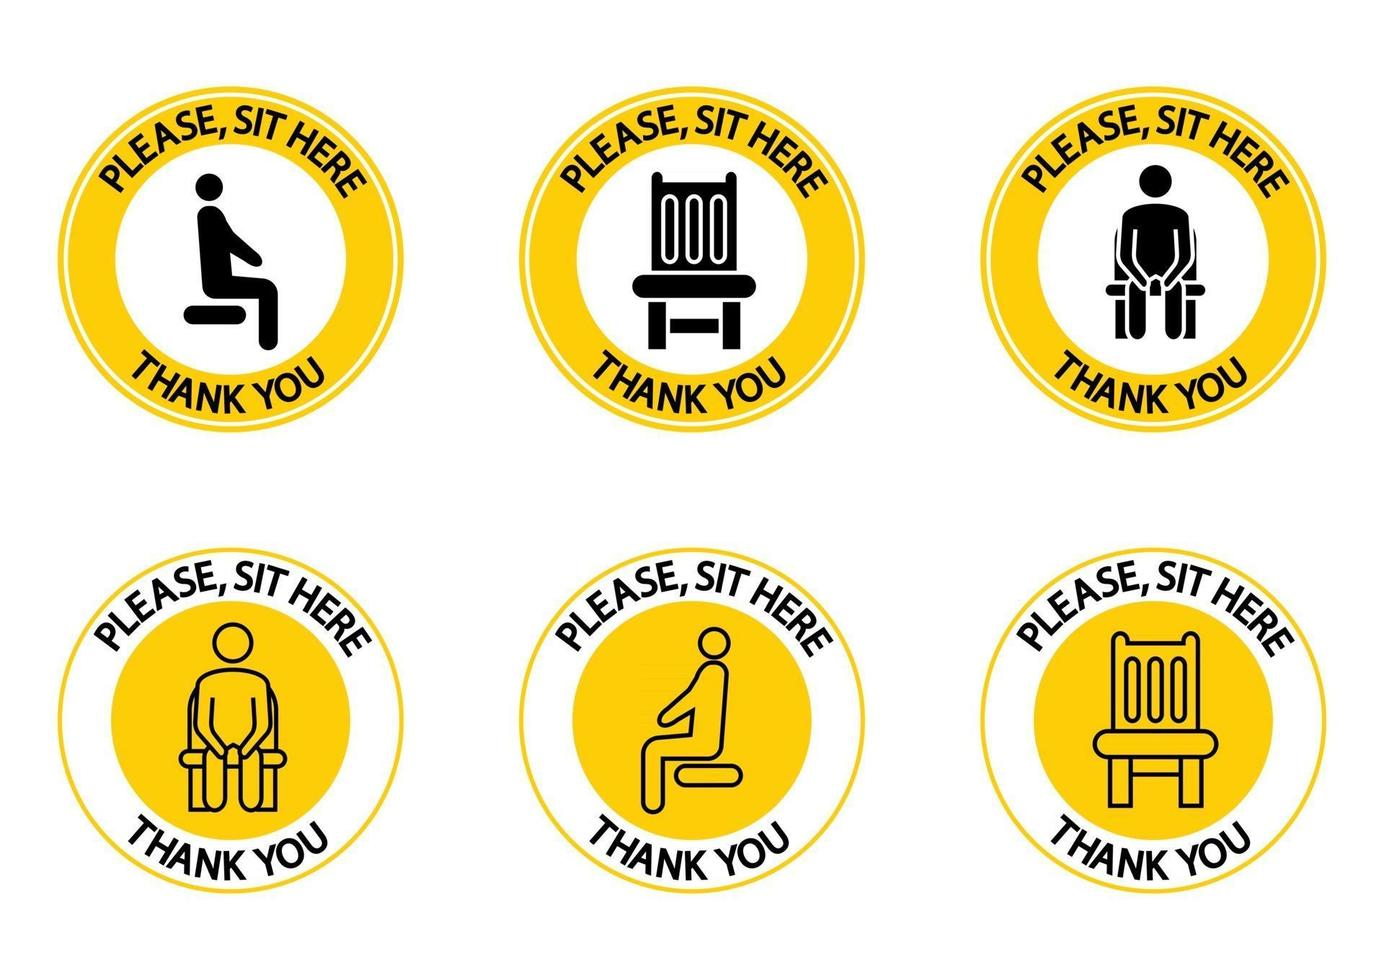 Please, sit here. You can sit here. Sitting icons. Prohibition sign. Lockdown rule. Sit on this chair. Keep your distance when you are sitting. Coronavirus prevention, icons. Vector